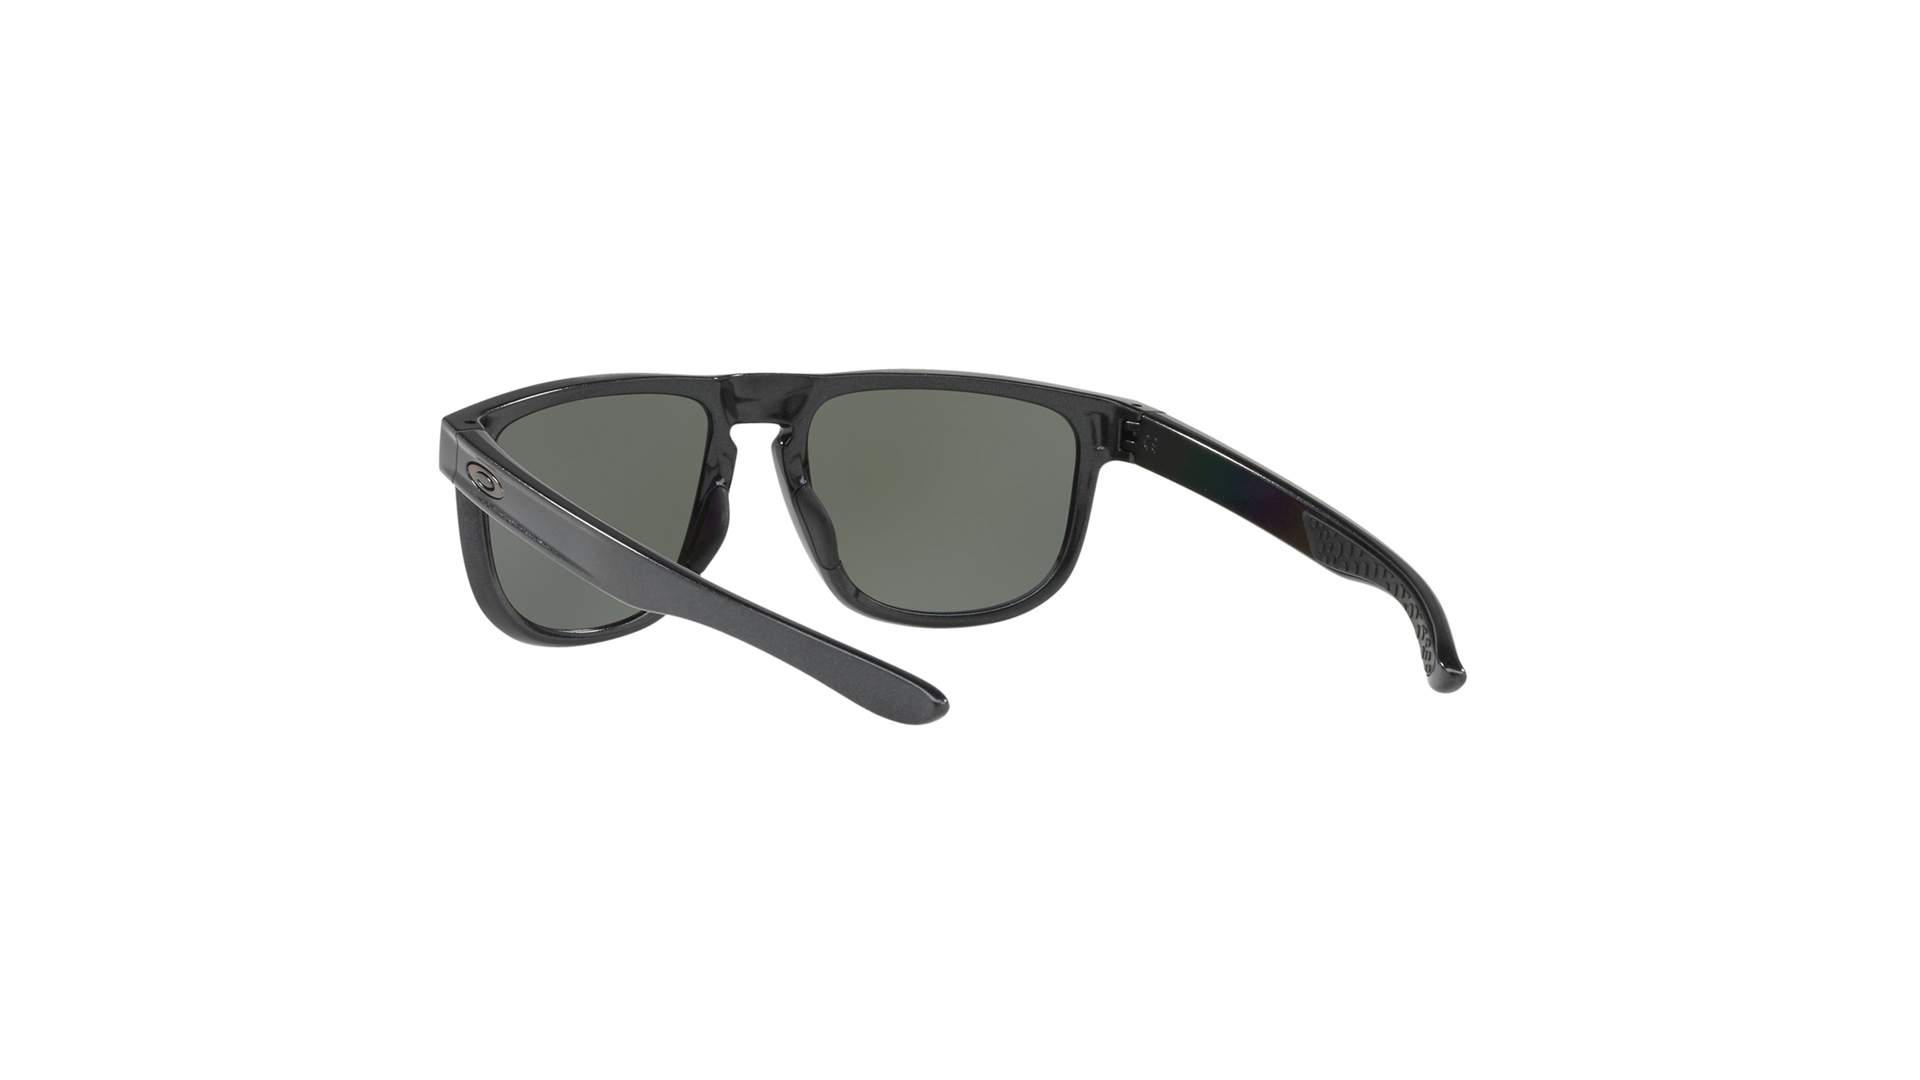 2f22d88d318 Sunglasses Oakley Holbrook R Black Prizm OO9377 08 55-17 Large Polarized  Mirror